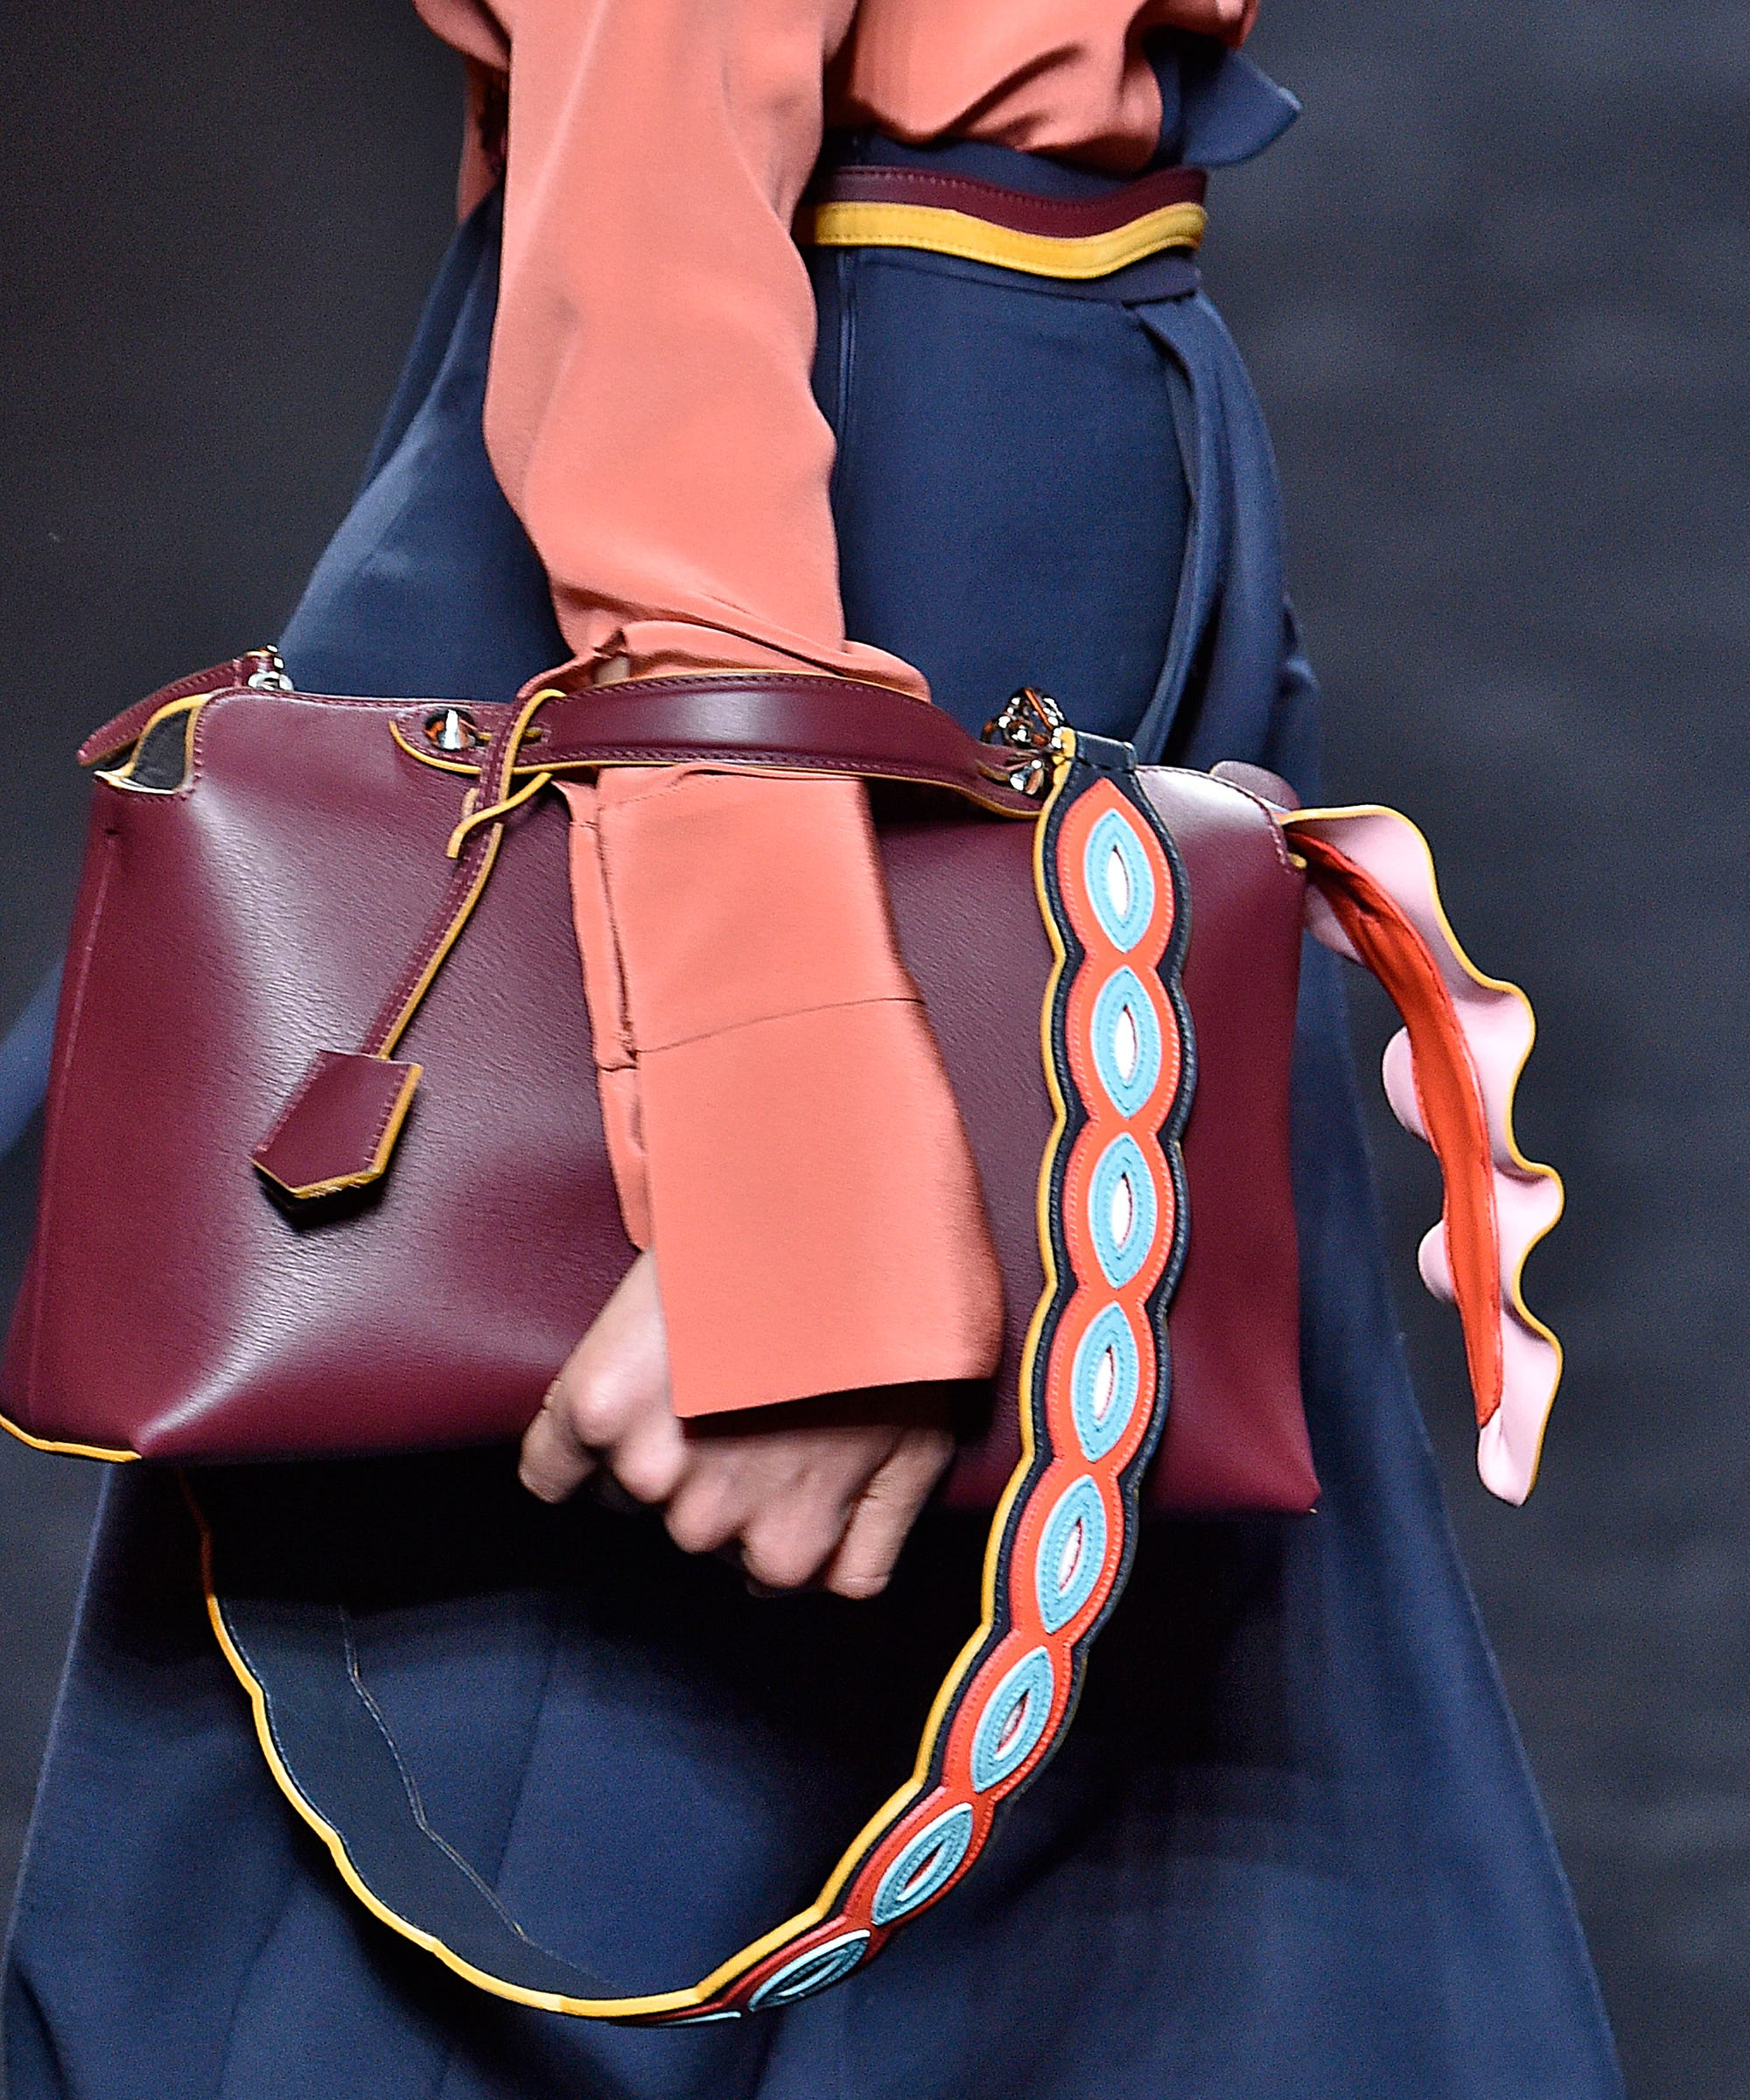 14 Handbag Trends That'll Make You Ditch Your Black Tote For Good